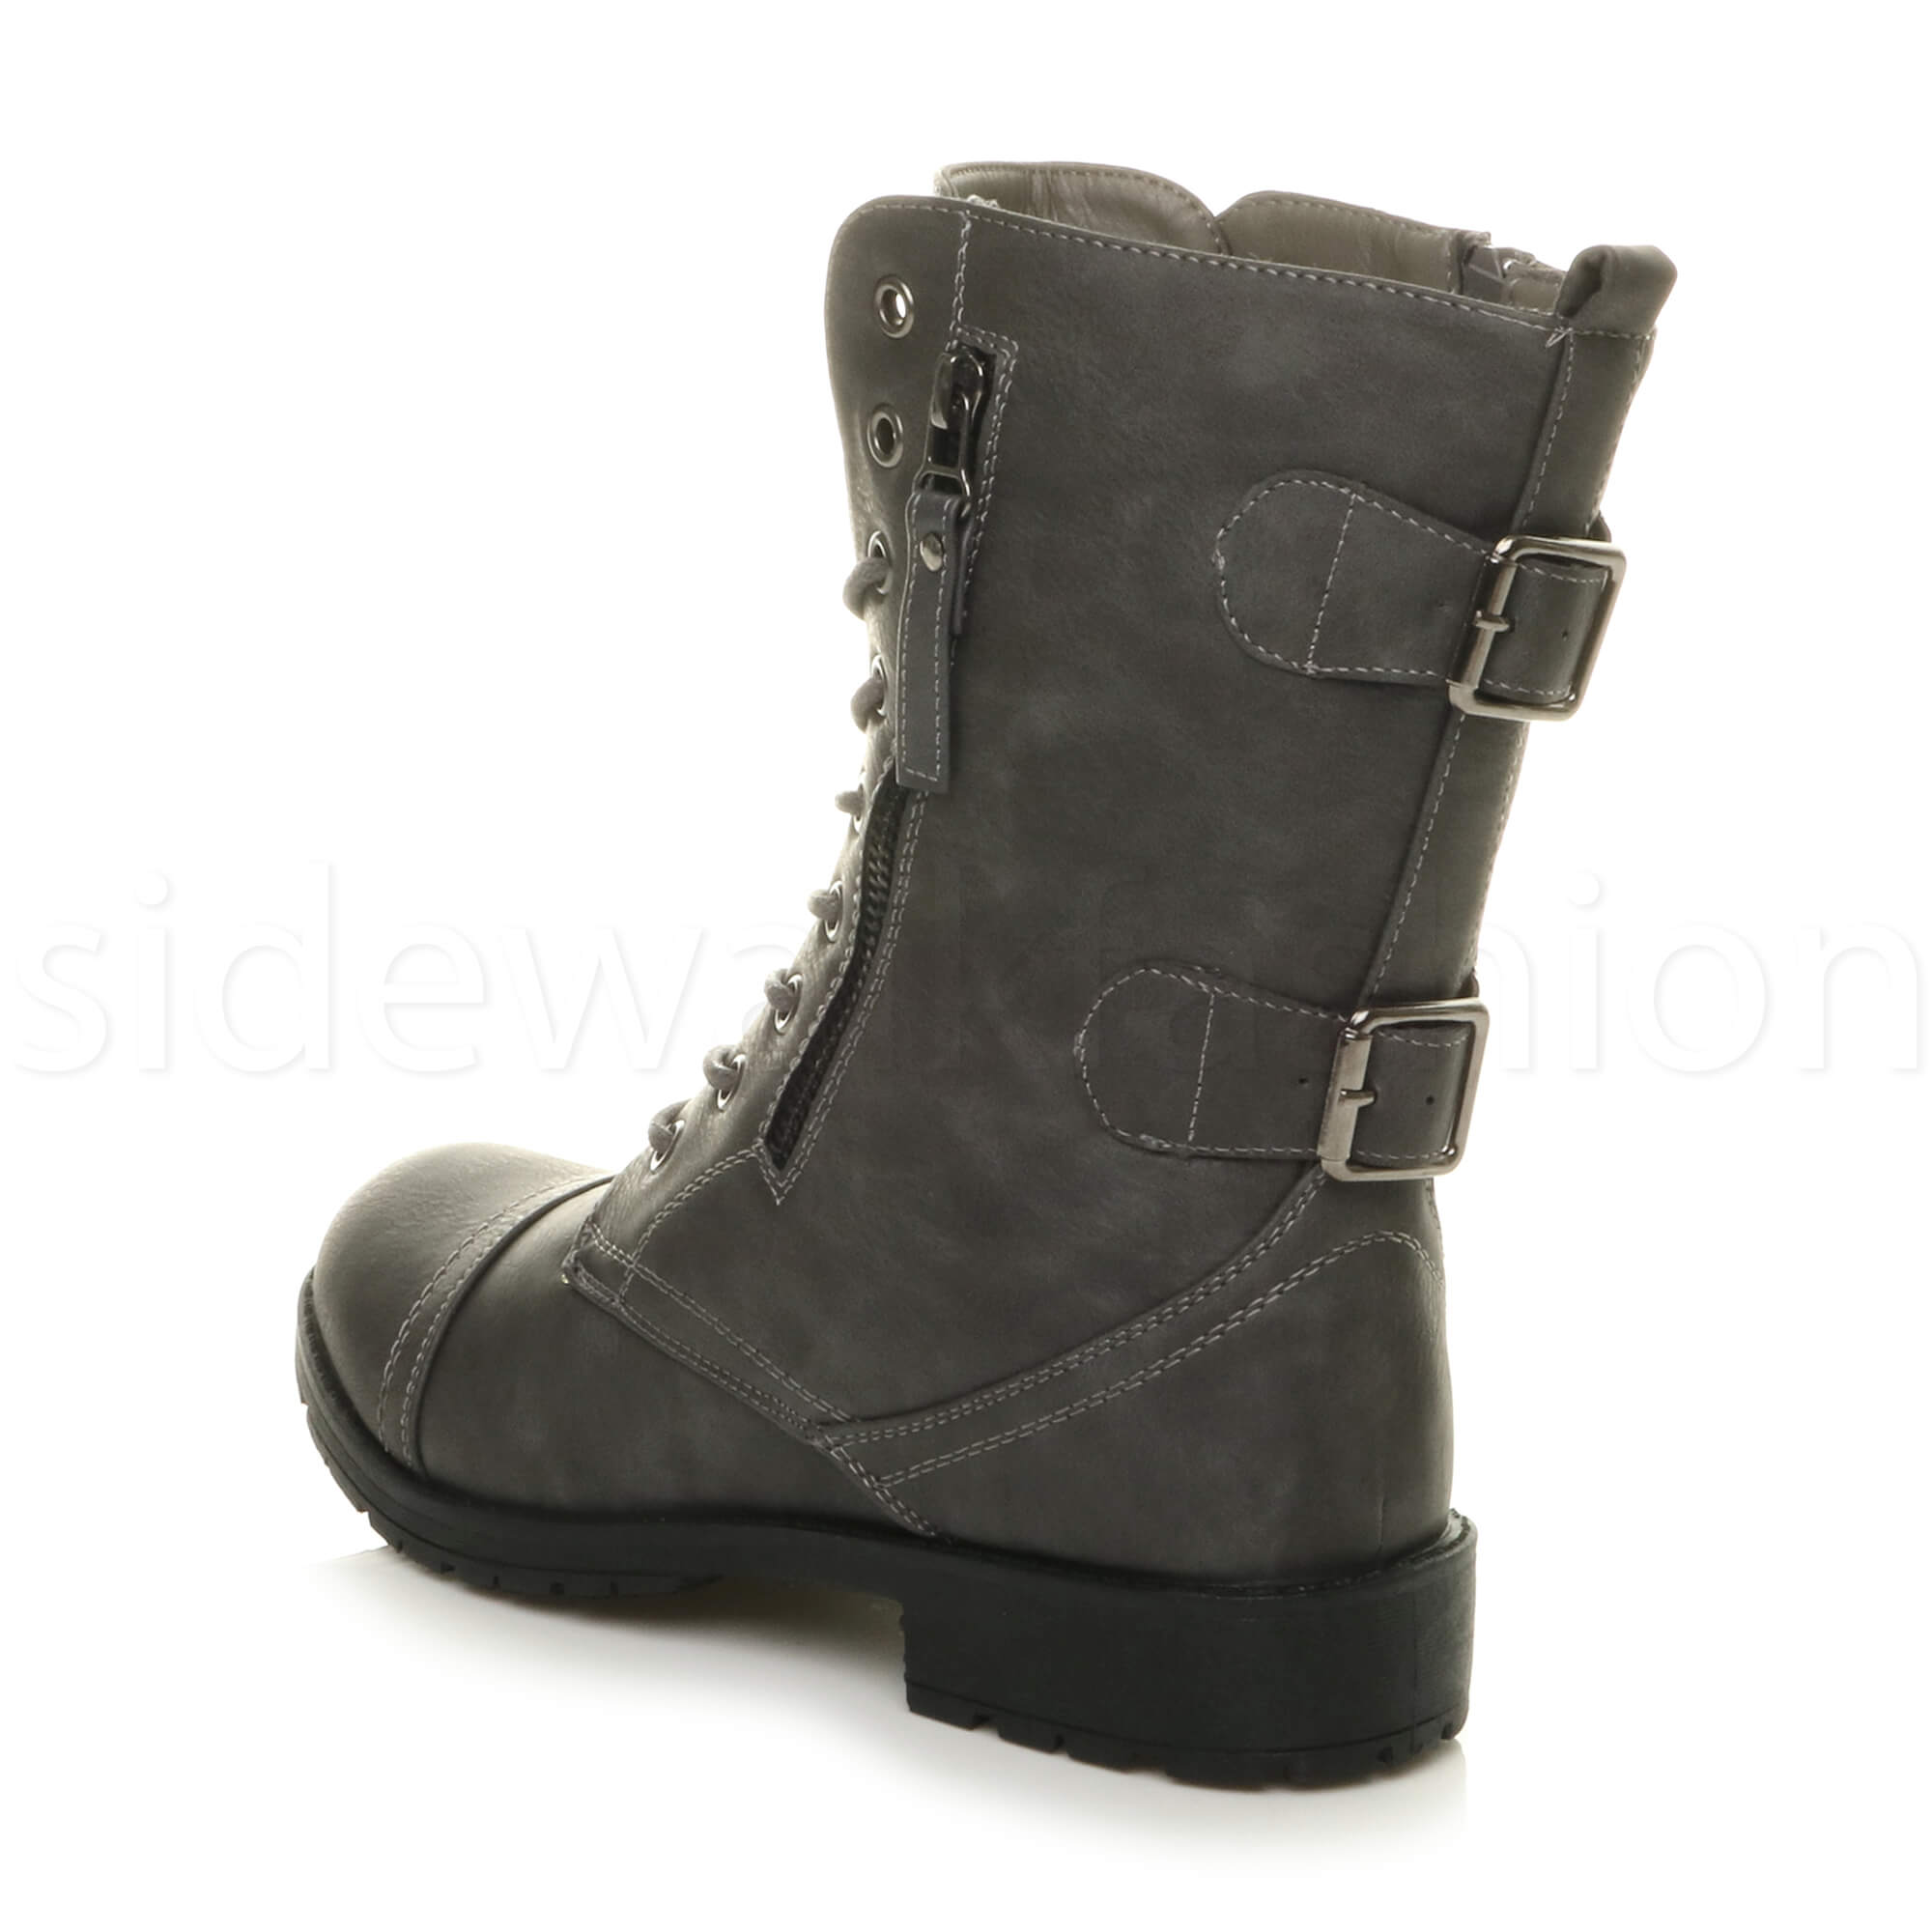 Womens-ladies-low-heel-flat-lace-up-zip-combat-biker-military-ankle-boots-size thumbnail 53